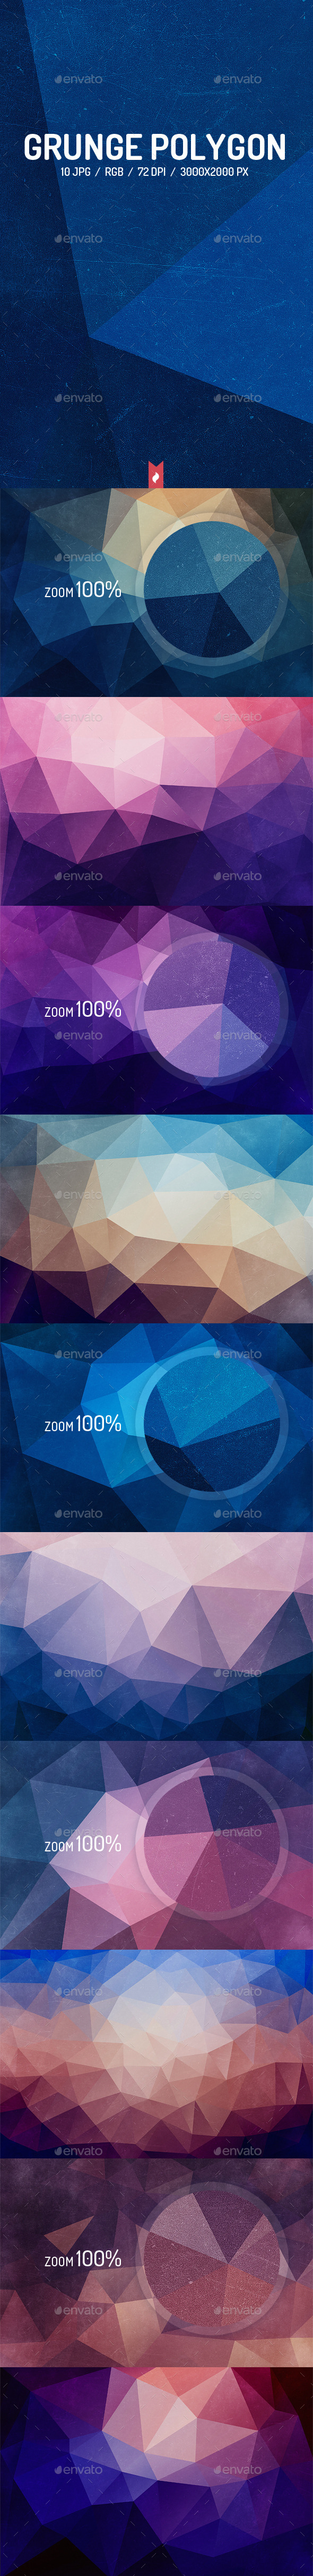 GraphicRiver Grunge Polygon Backgrounds 10017409